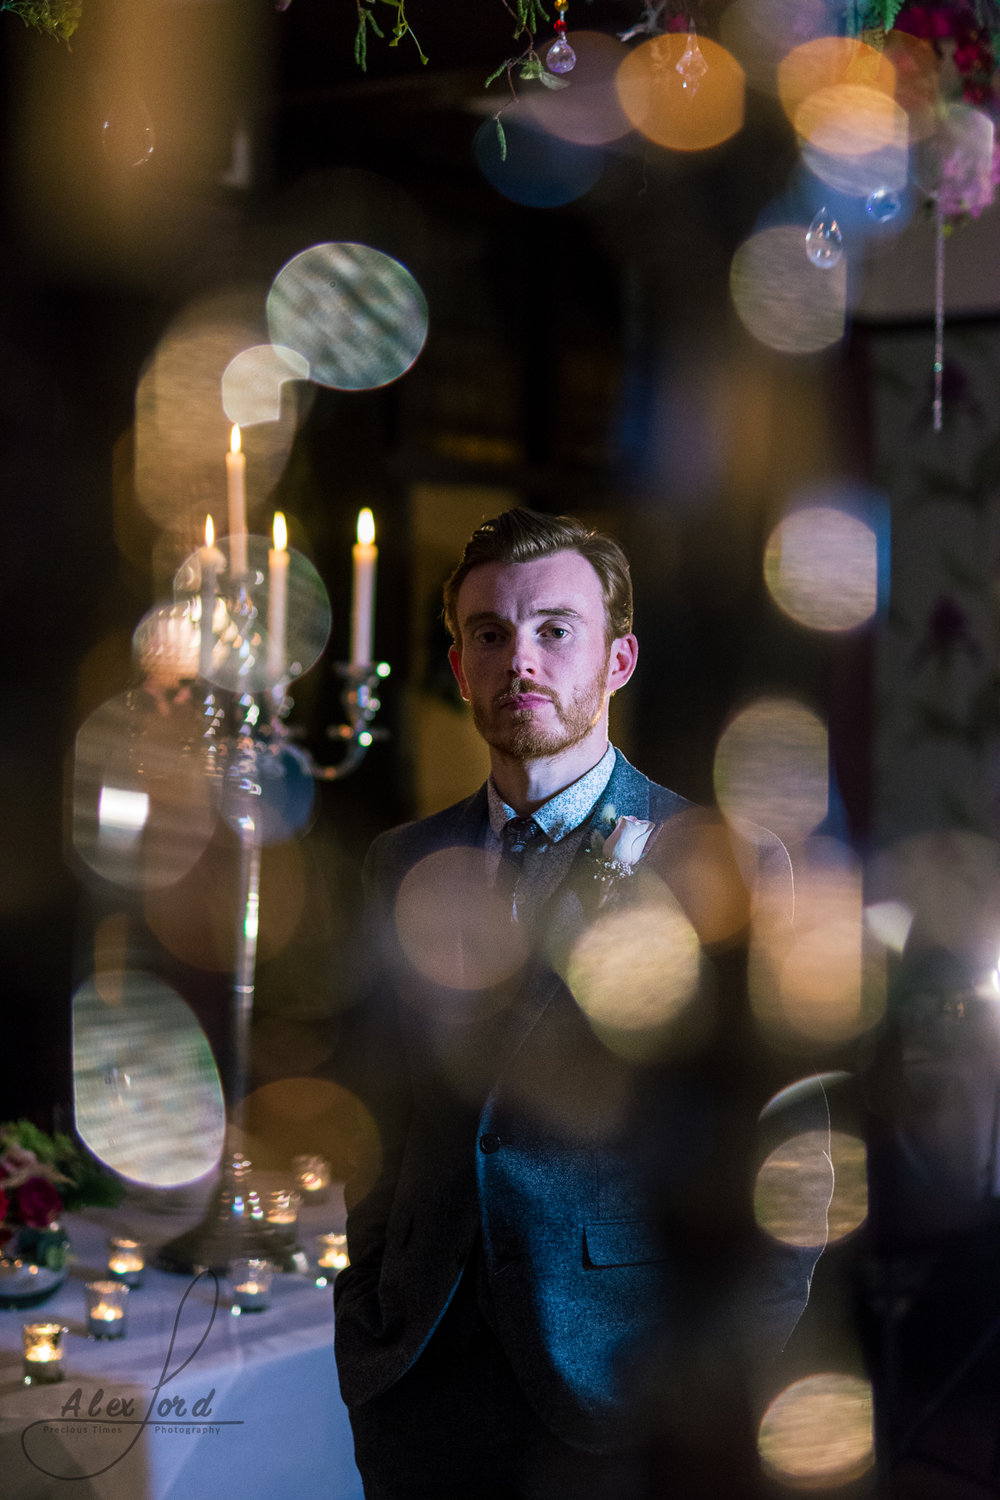 inside the wedding venue the groom stand on his own surrounded by candles in dim light